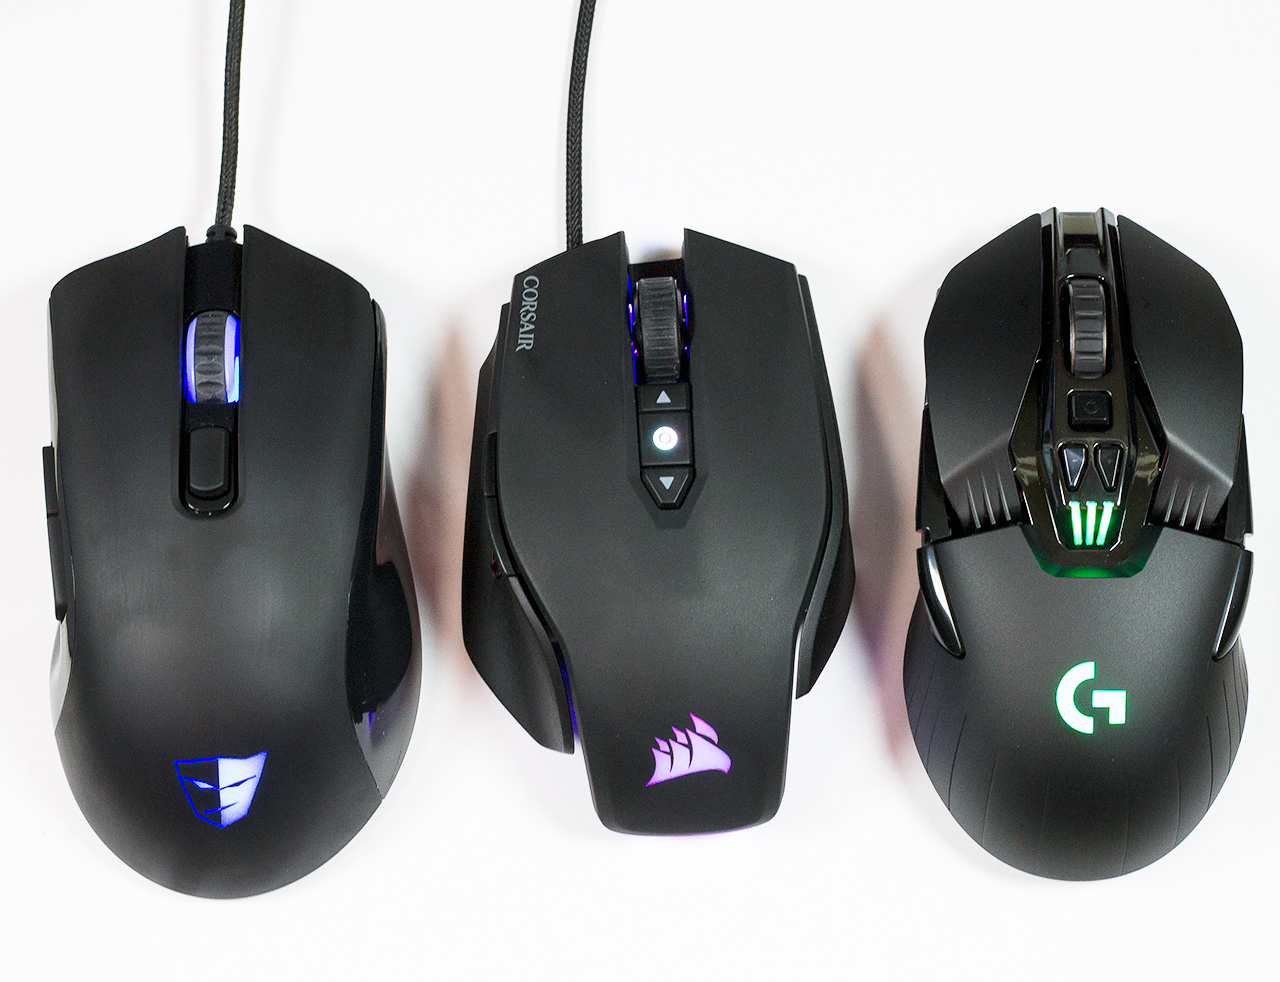 Precision Gaming Mouse Round-Up: Tesoro, Corsair, Logitech